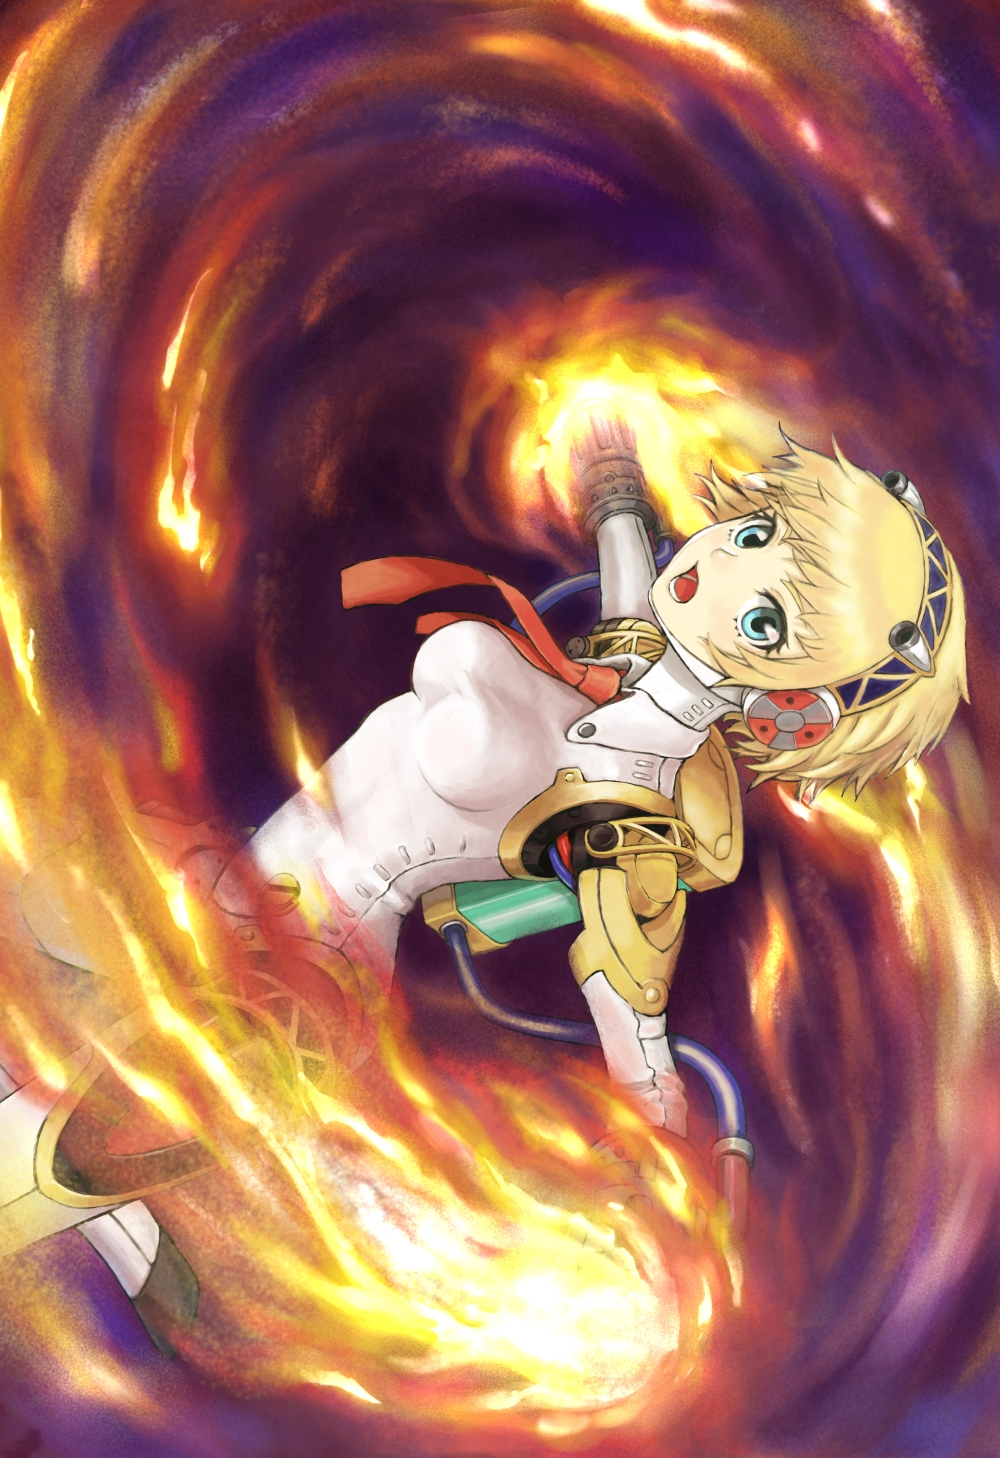 aegis amuno android blonde_hair blue_eyes fire headband highres necktie persona persona_3 persona_4:_the_ultimate_in_mayonaka_arena robot_joints short_hair